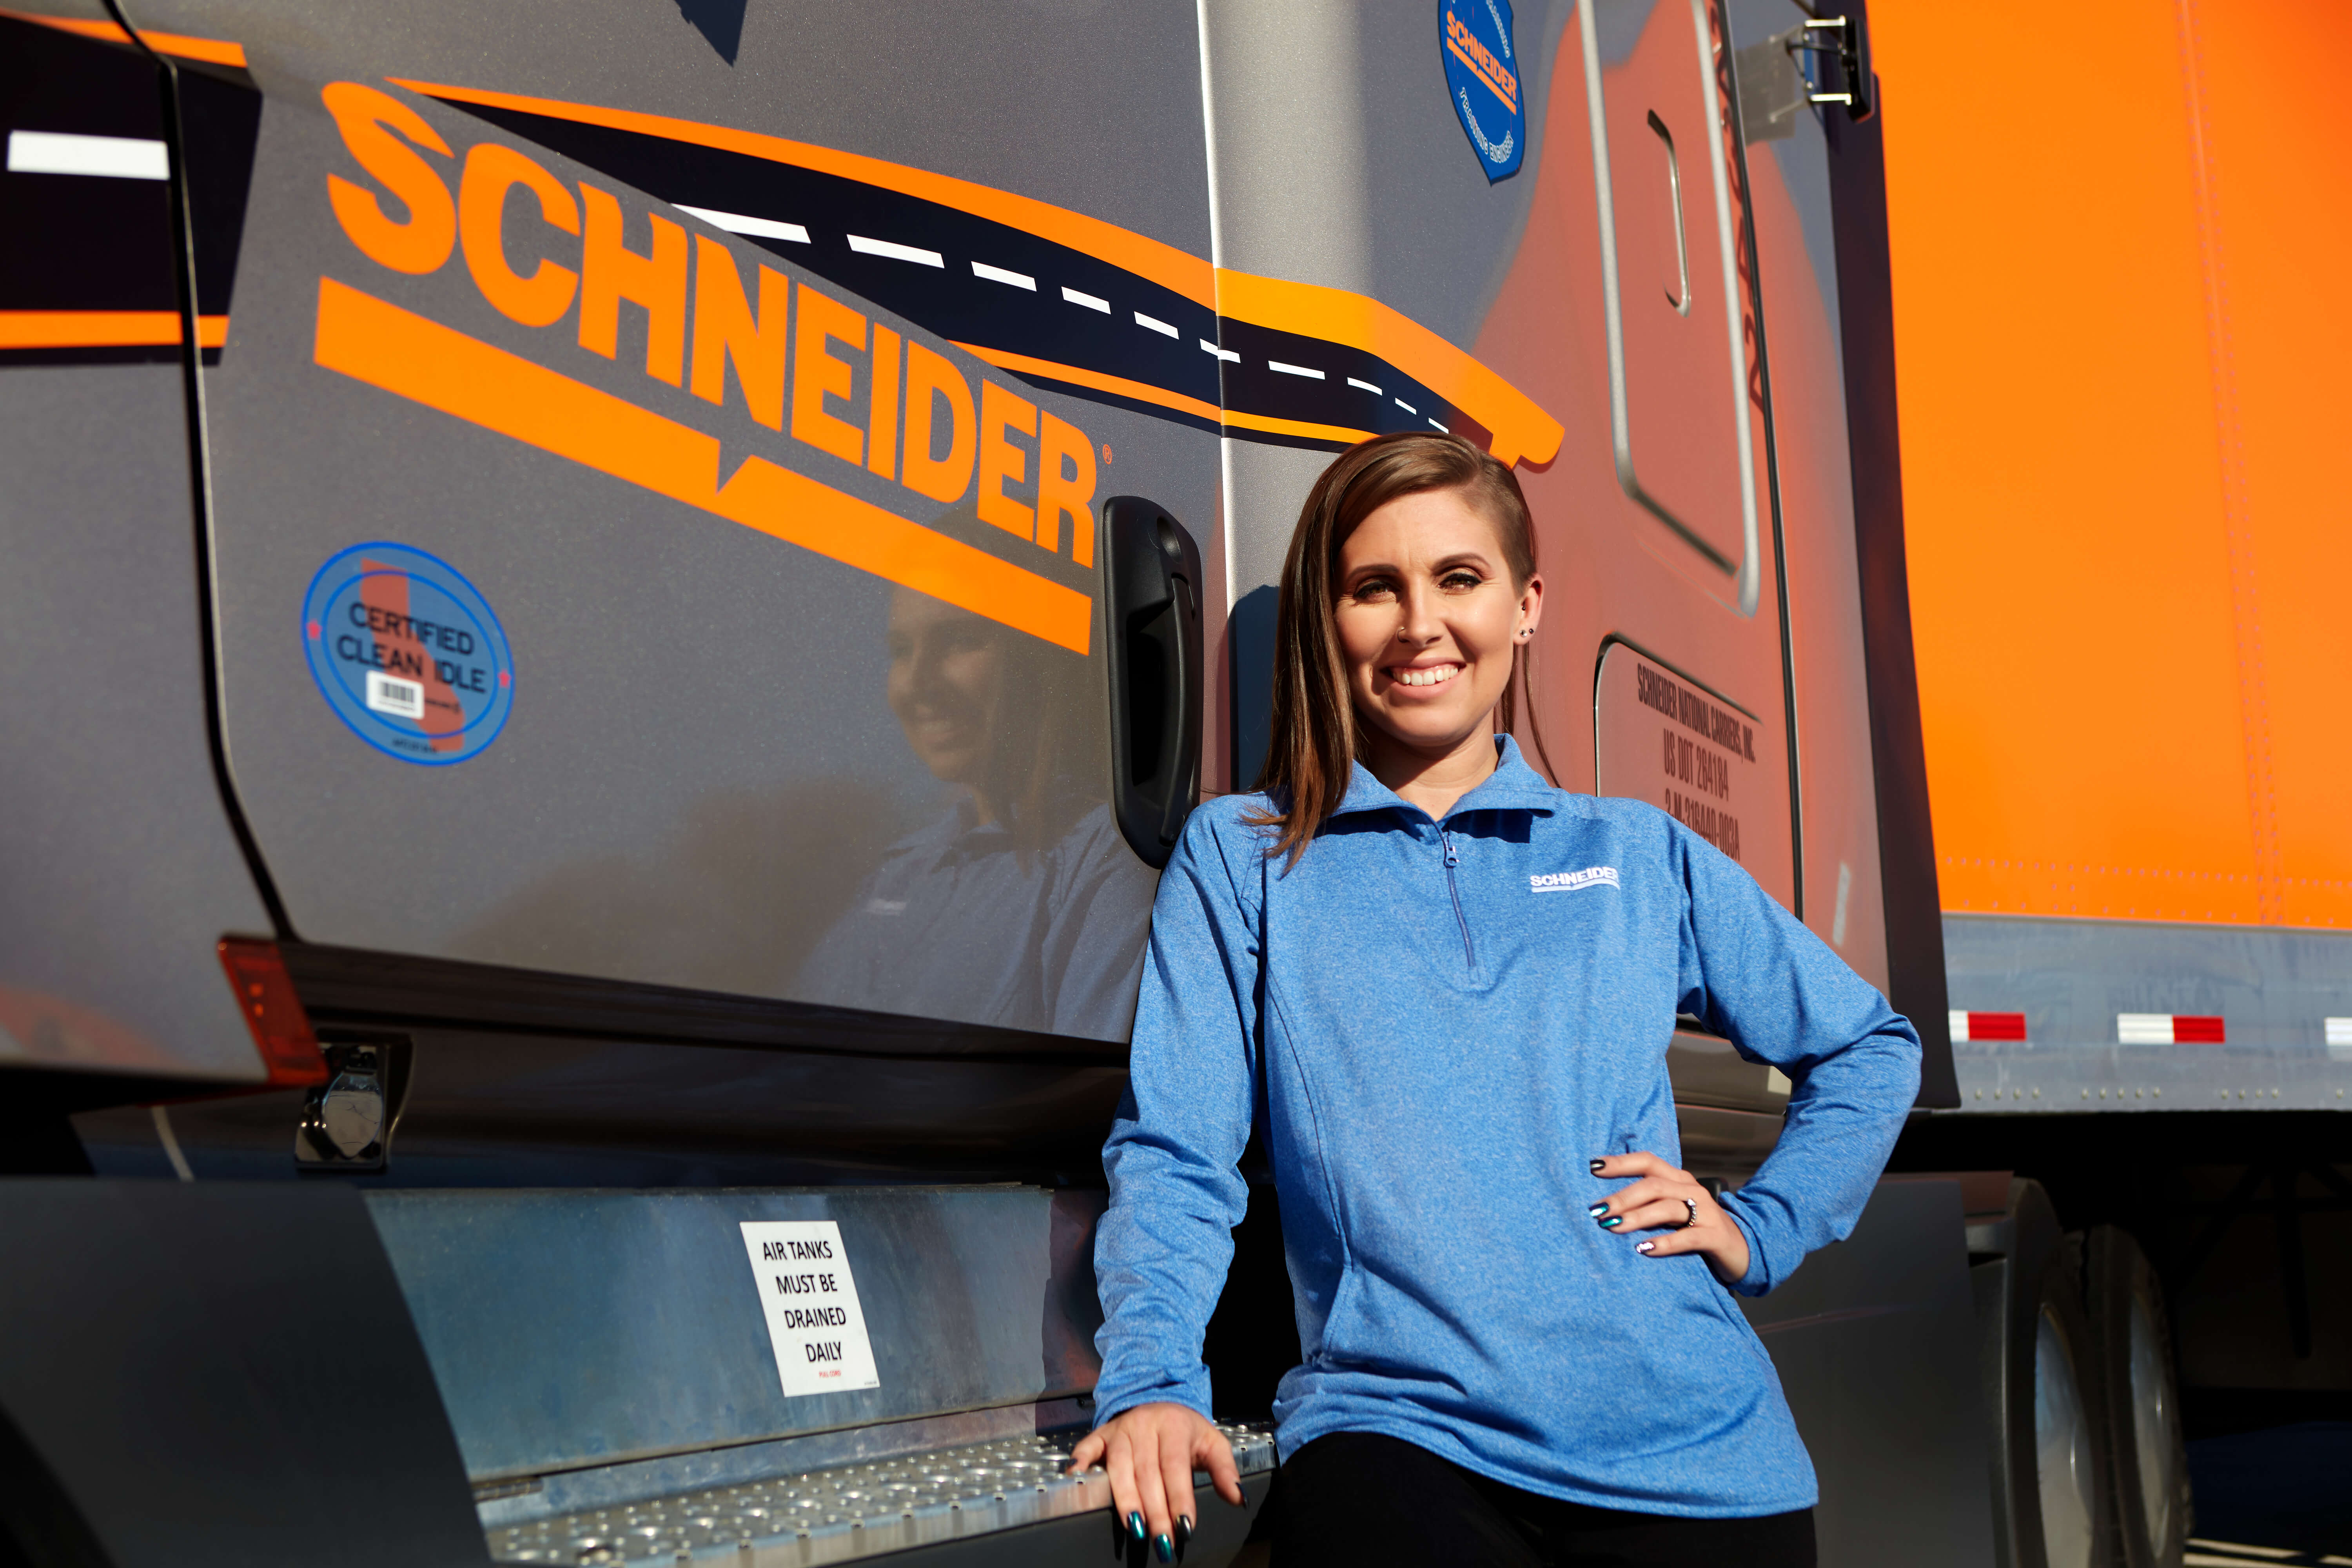 KayLeigh McCall poses in front of a champagne-colored Schneider tractor and an orange Schneider trailer.